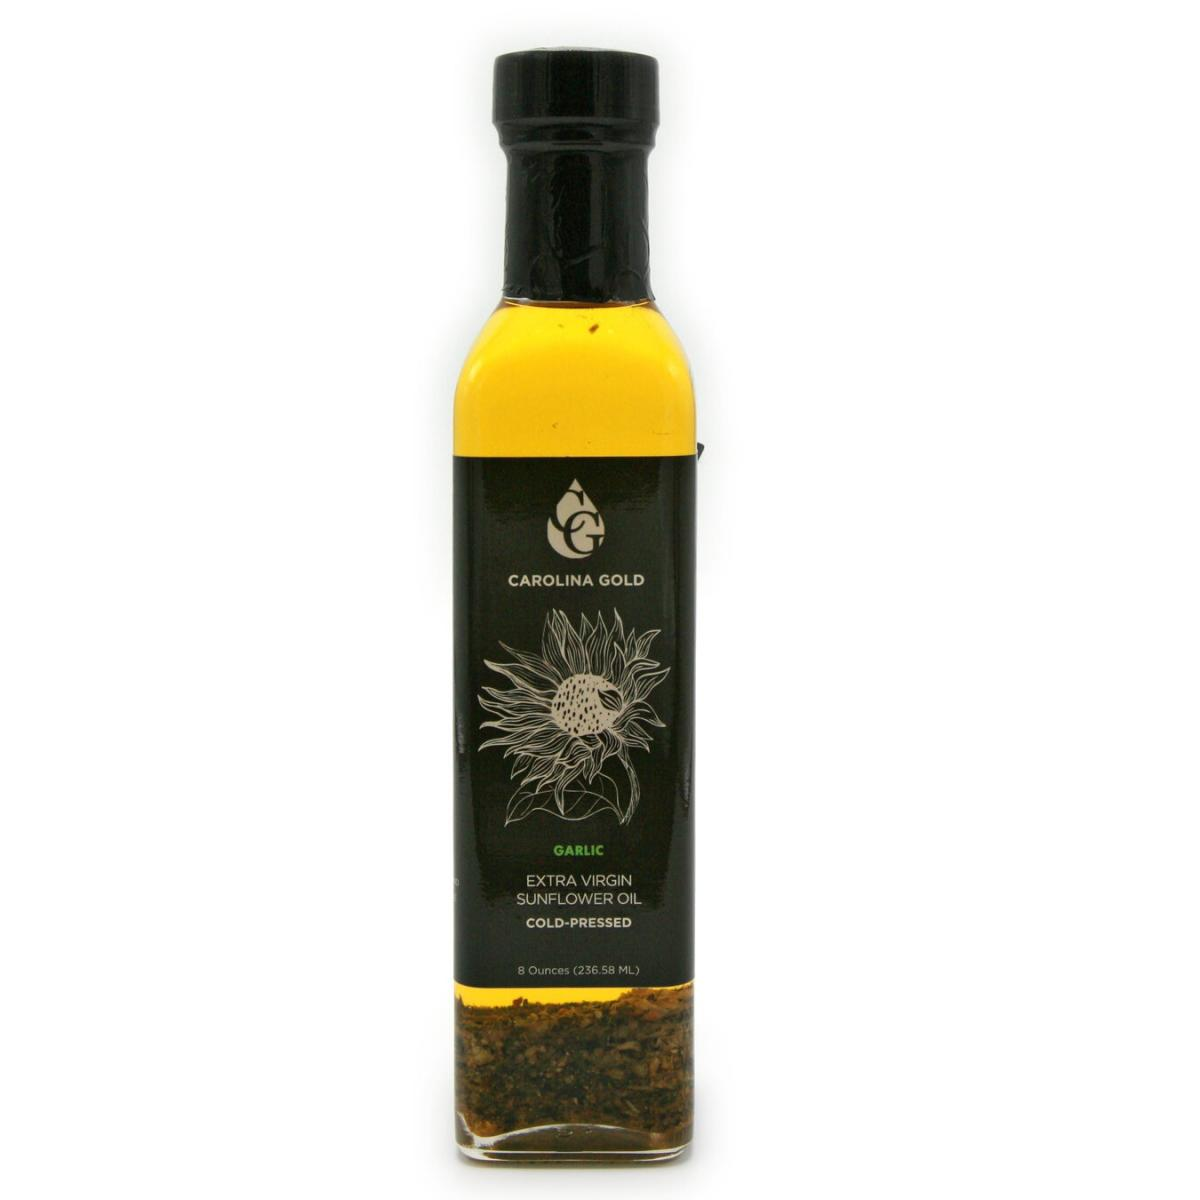 Garlic Infused Extra Virgin Sunflower Oil